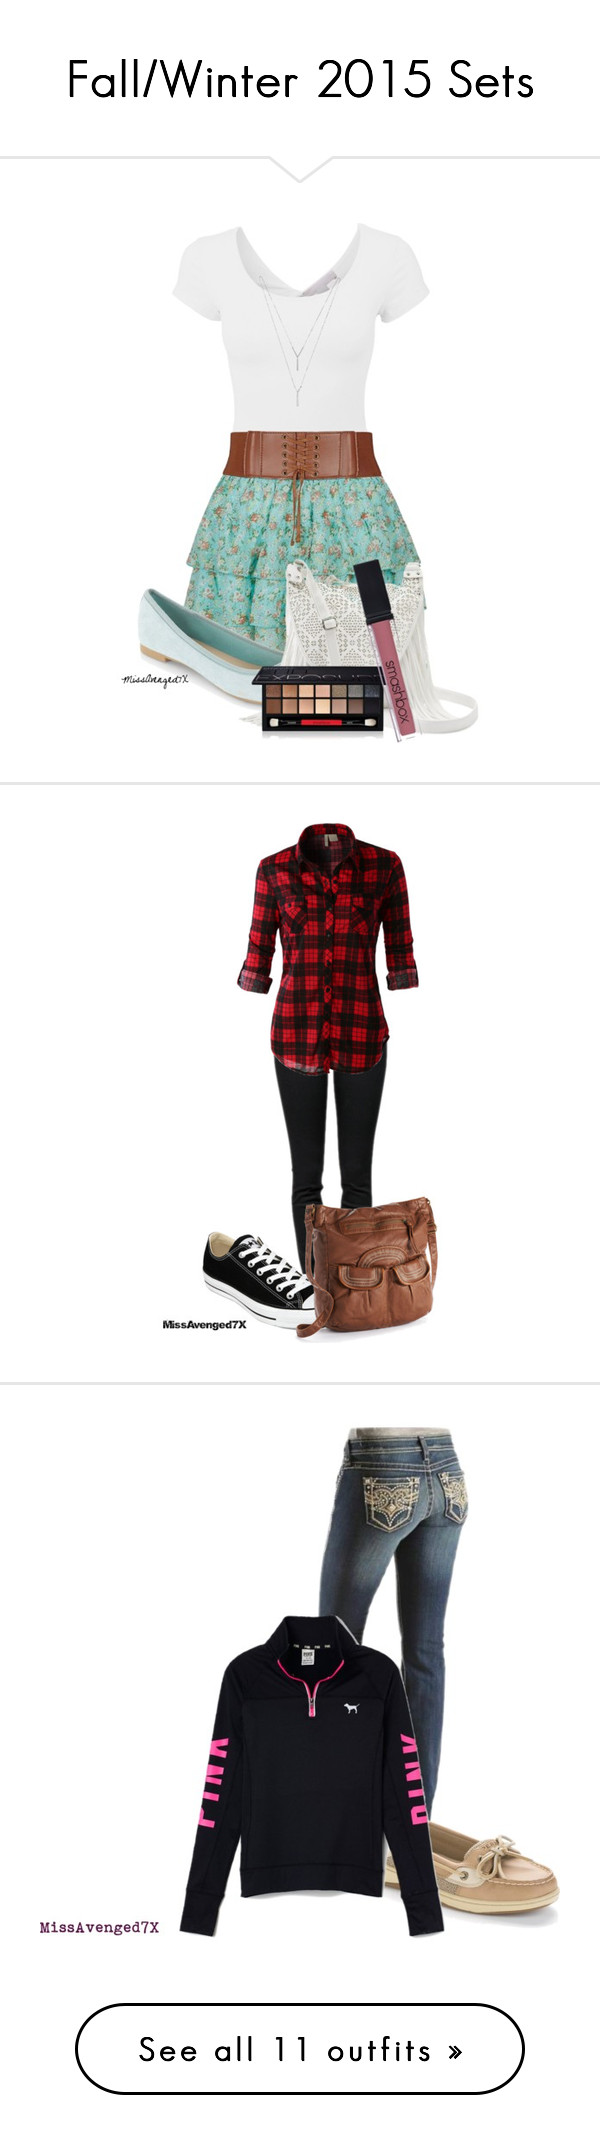 """""""Fall/Winter 2015 Sets"""" by missavenged7x ❤ liked on Polyvore featuring Candie's, BCBGeneration, Smashbox, Proenza Schouler, LE3NO, Converse, Mudd, Ariat, Sperry Top-Sider and Victoria's Secret PINK"""